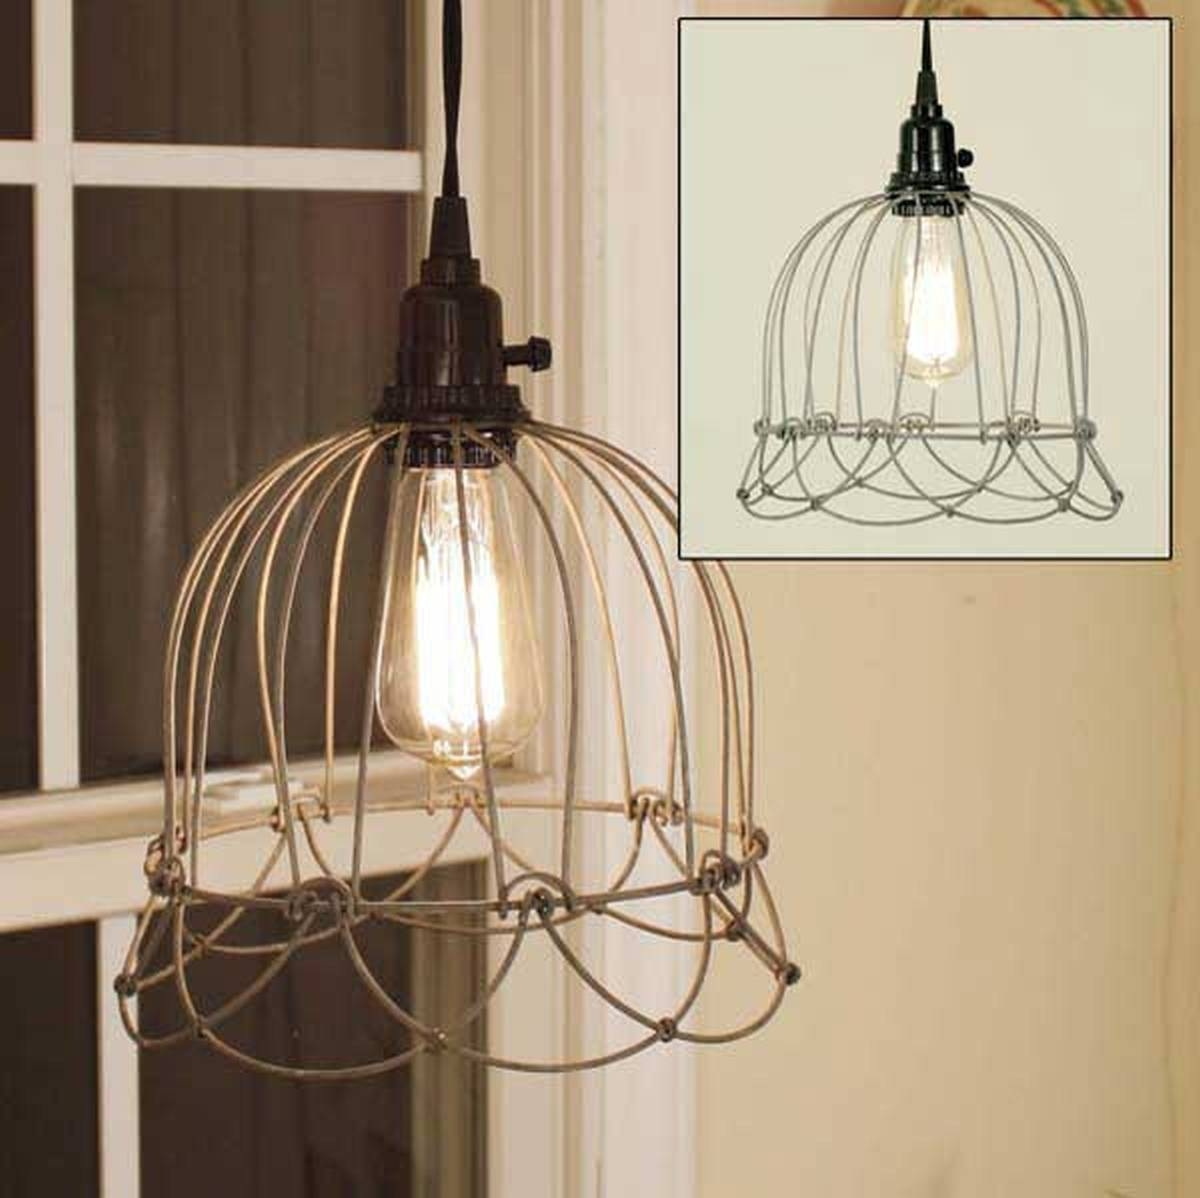 Amazing Wire Pendant Lights 23 For Your Battery Operated Pendant for Battery Pendant Lights (Image 2 of 15)